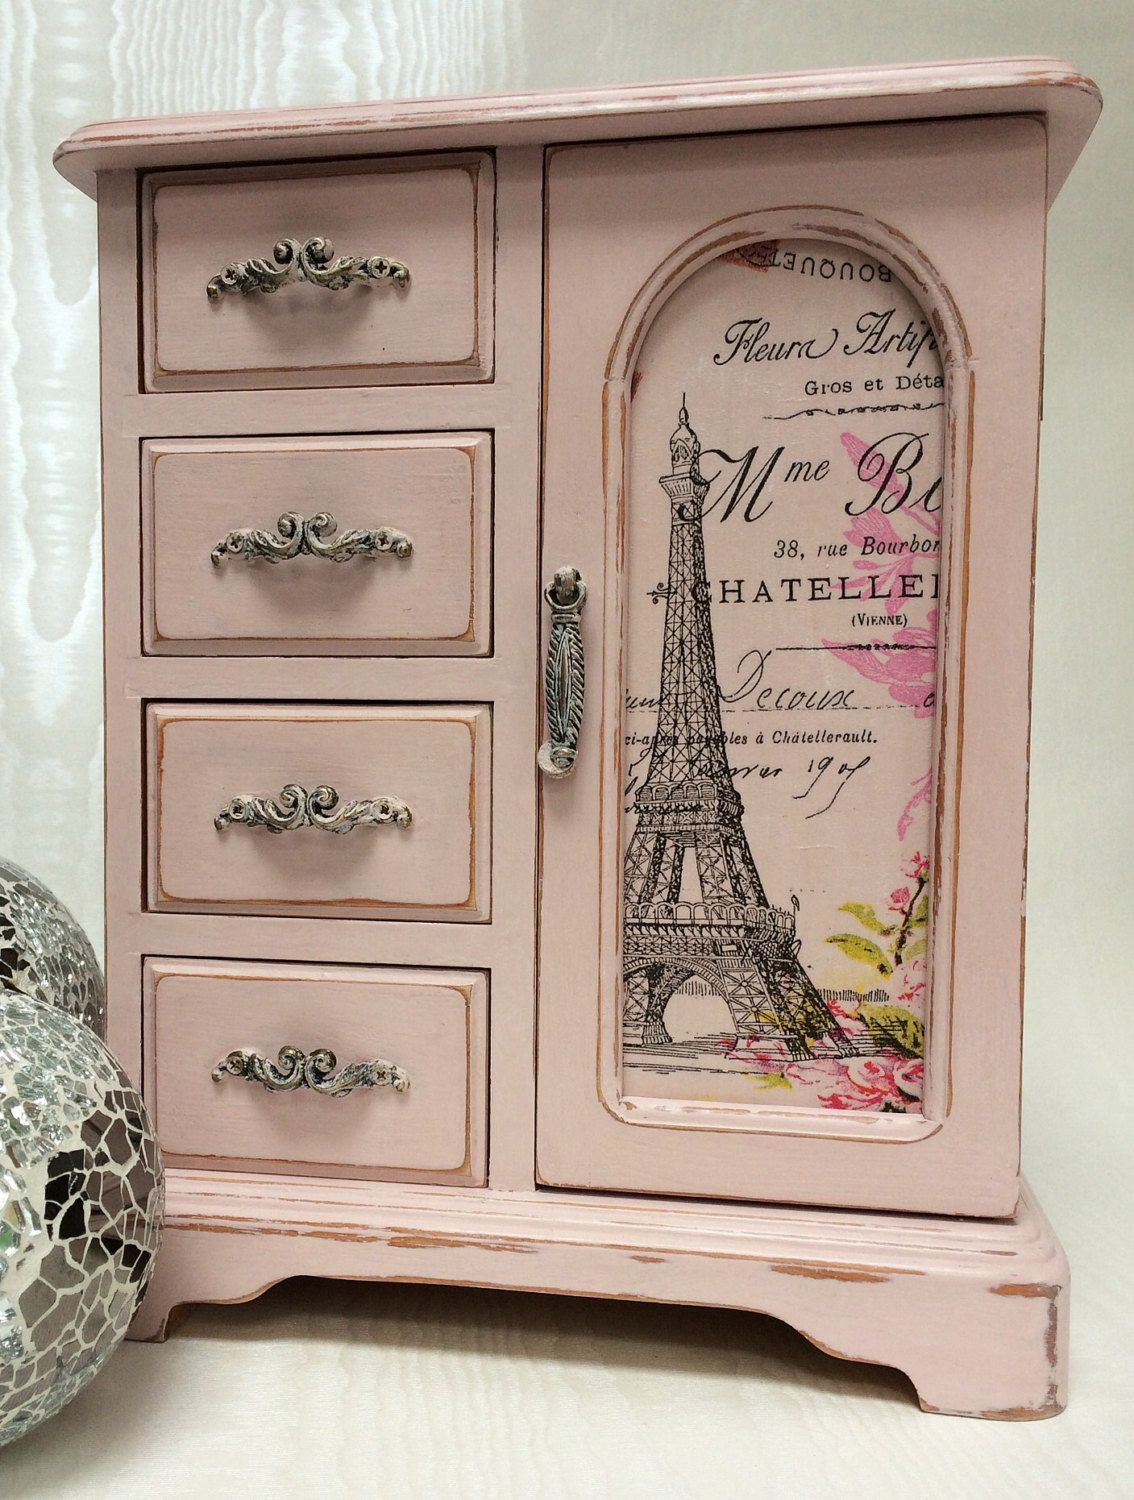 Parisian Themed Vintage Jewellery Box By Livvysloft On Etsy Painted Jewelry Boxes Vintage Jewelry Box Jewelry Box Makeover